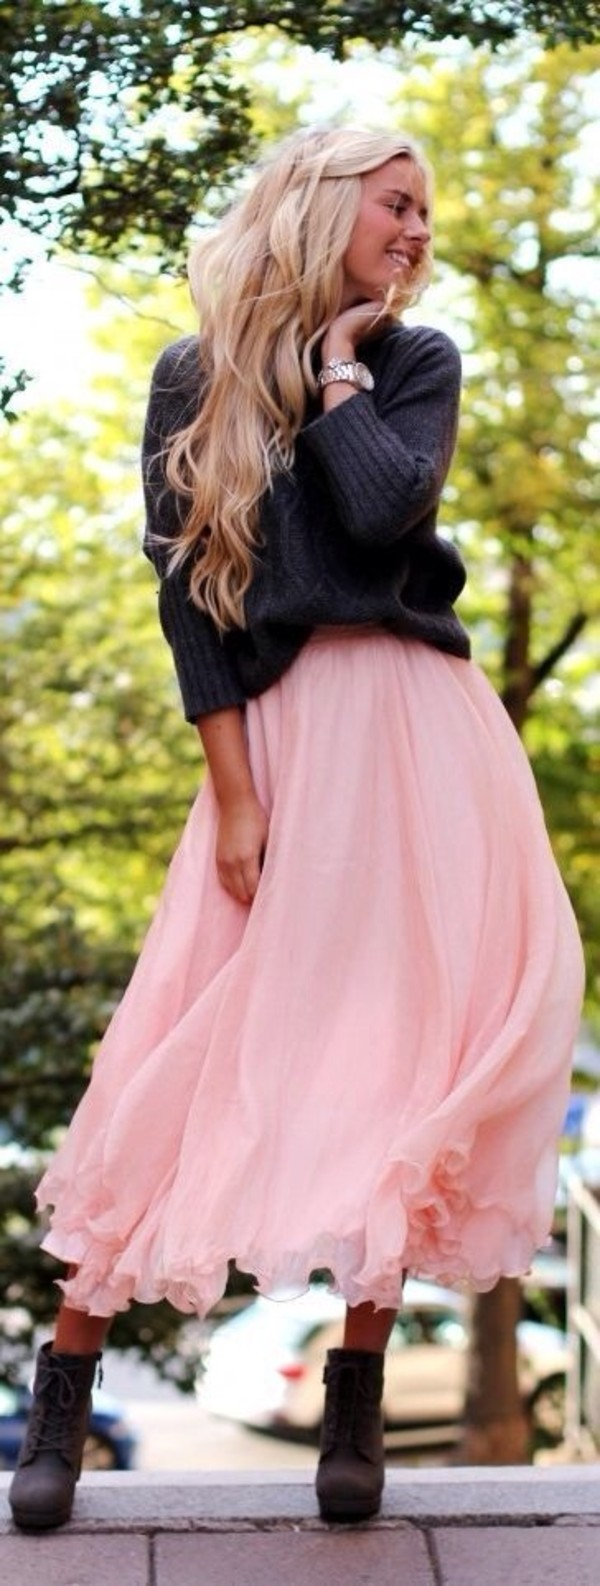 sweater skirt shoes maxi skirt long skirt pink pink skirt grey sweater watch frilly ruffle boots blonde hair romantic outfit